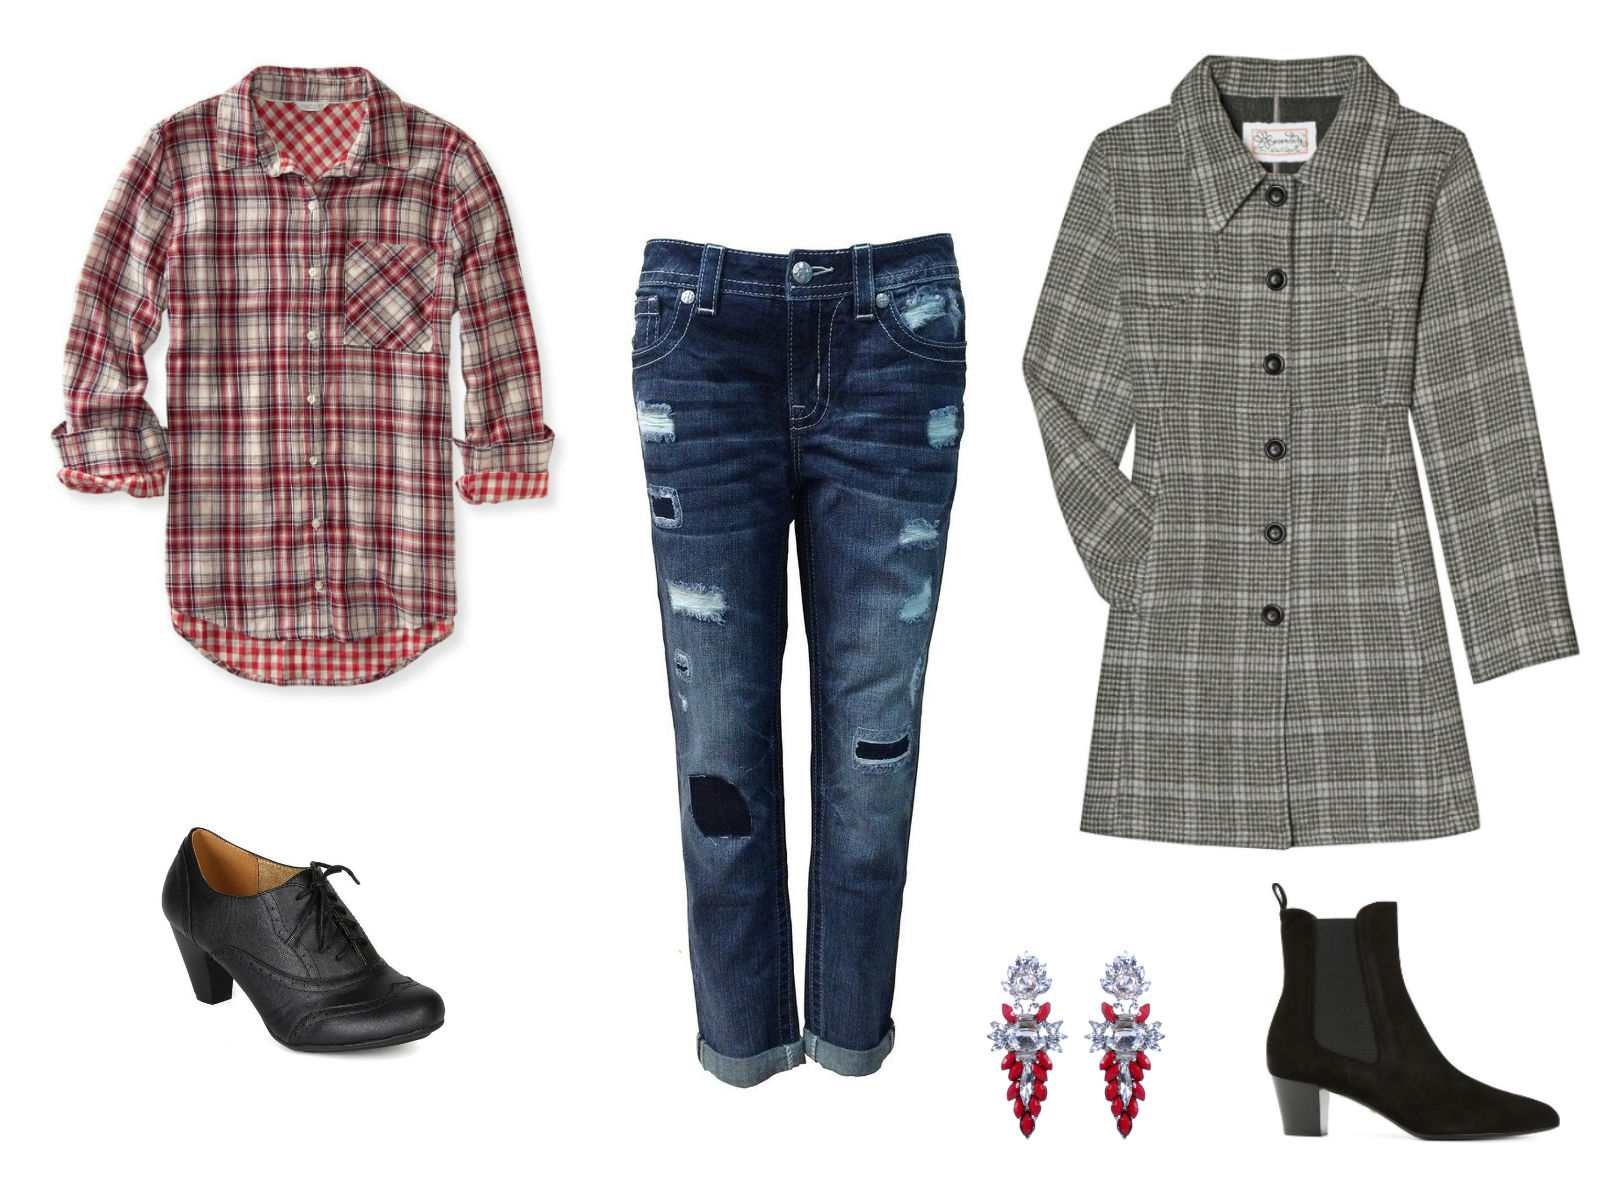 Boyfriend jeans with a plaid shirt and coat